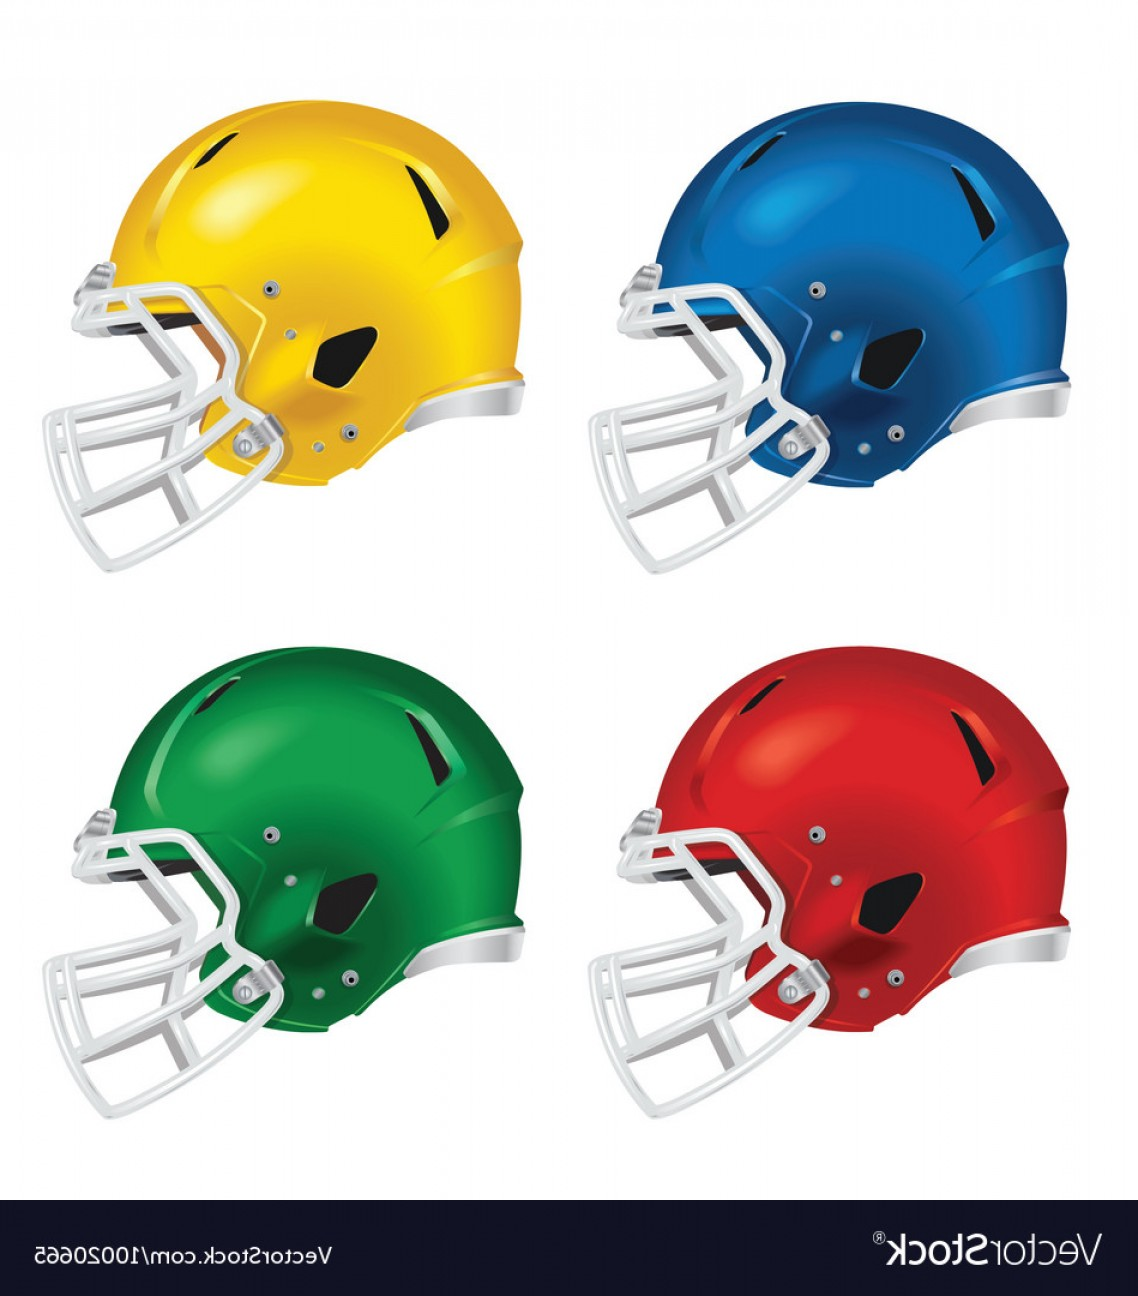 Distressed Football Helmet Vector: Football Helmets With White Facemasks Vector